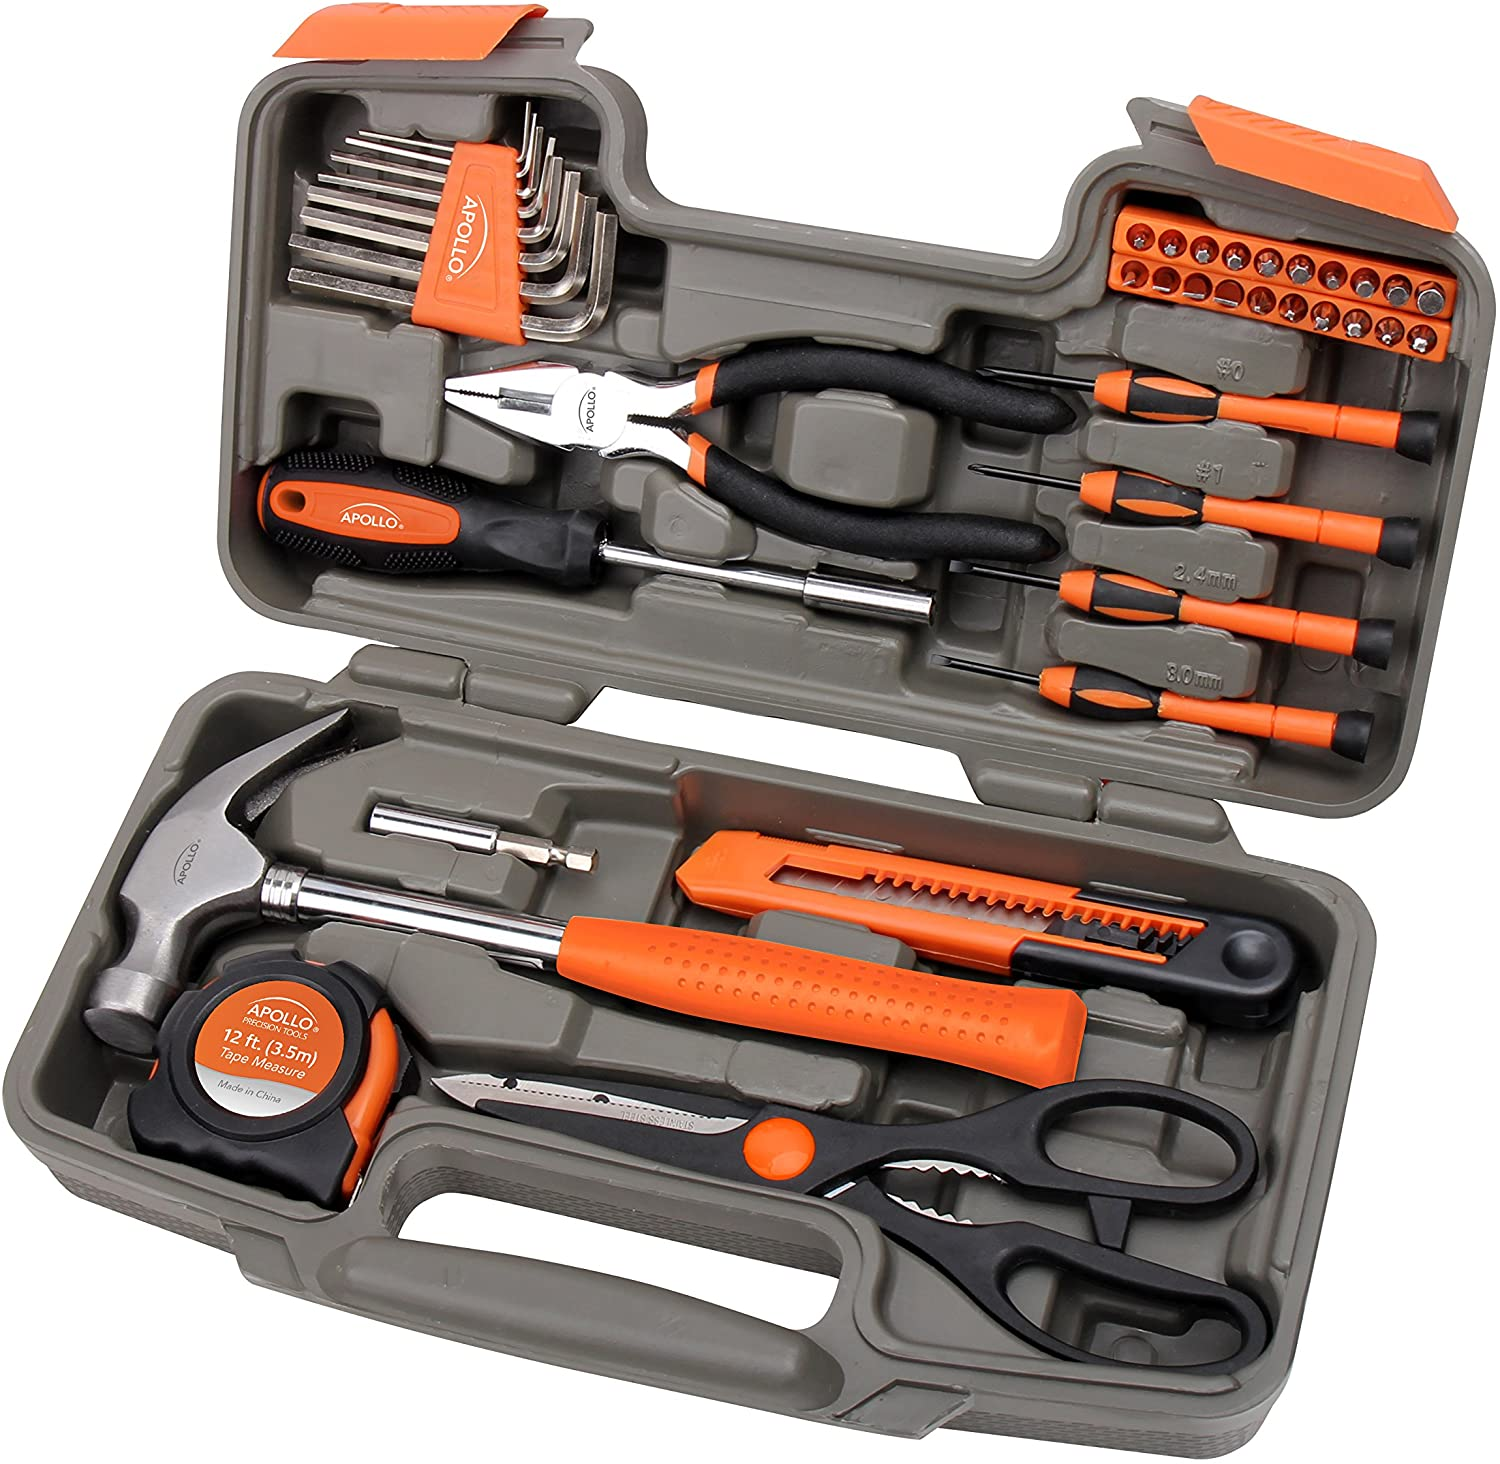 Apollo Tools Original 39 Piece General Household Tool Set in Toolbox Storage Case with Essential Hand Tools for Everyday Home Repairs